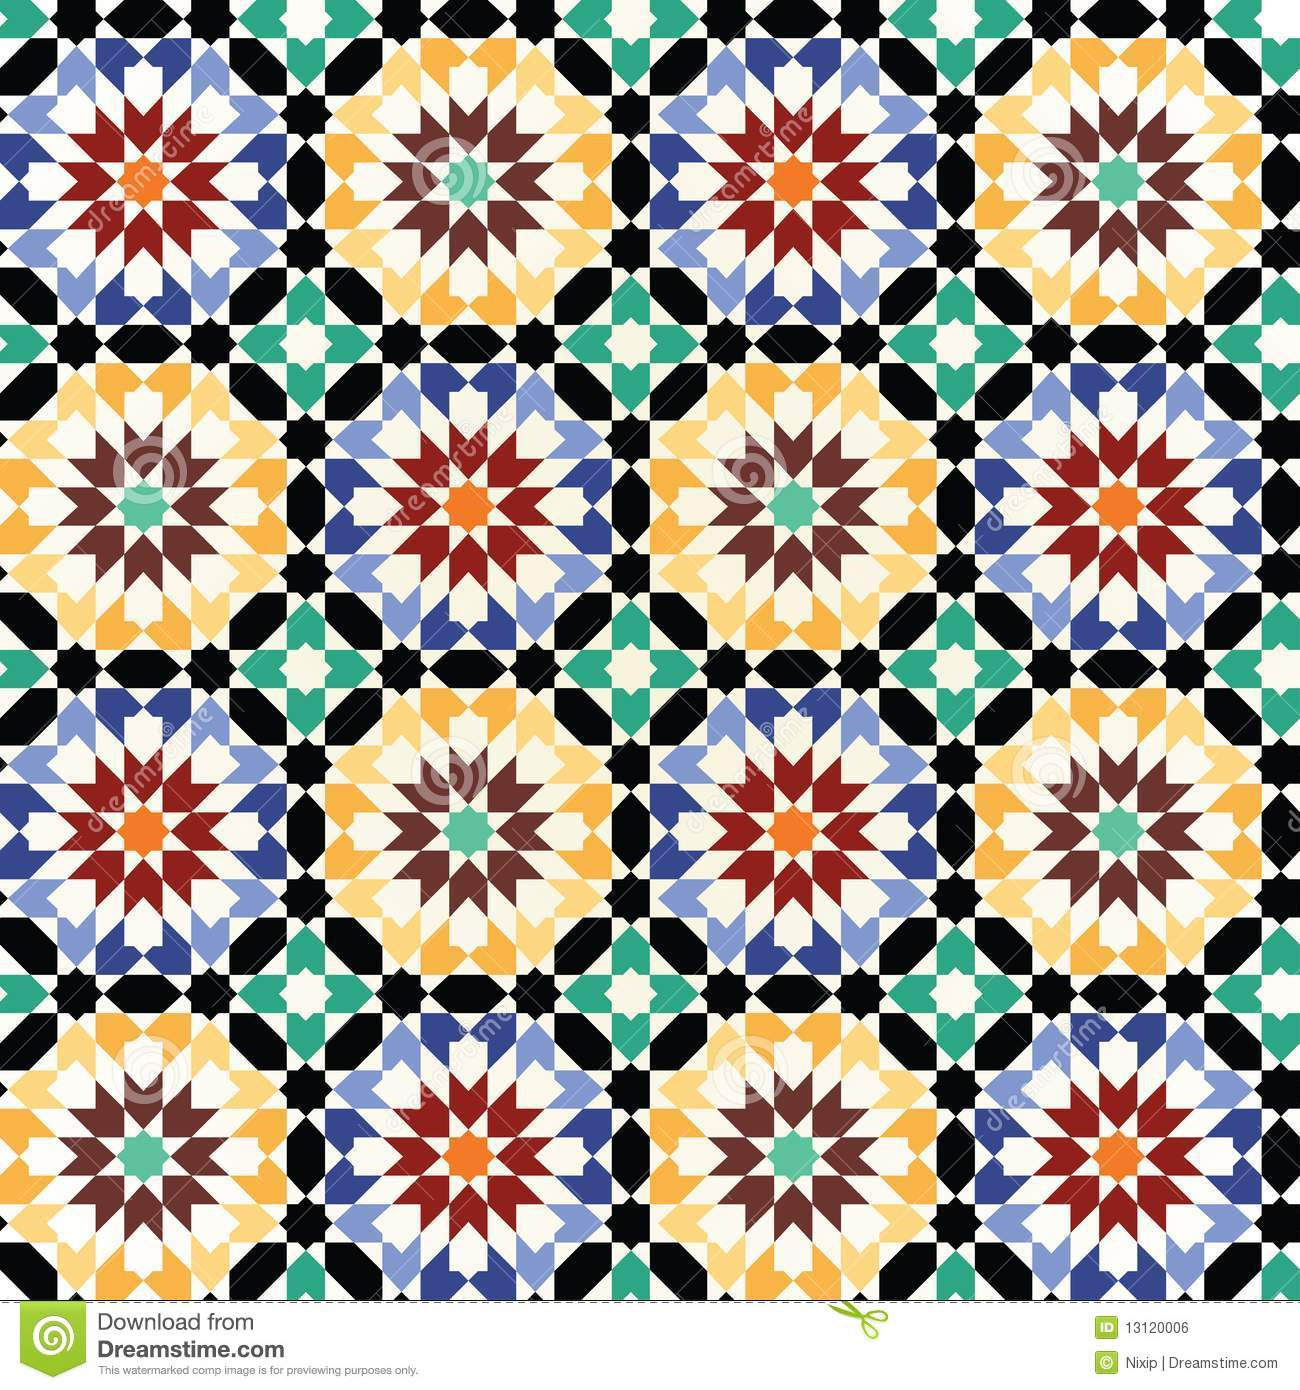 Seamless Mosaic Tile Pattern Vector Stock Vector - Illustration of ...